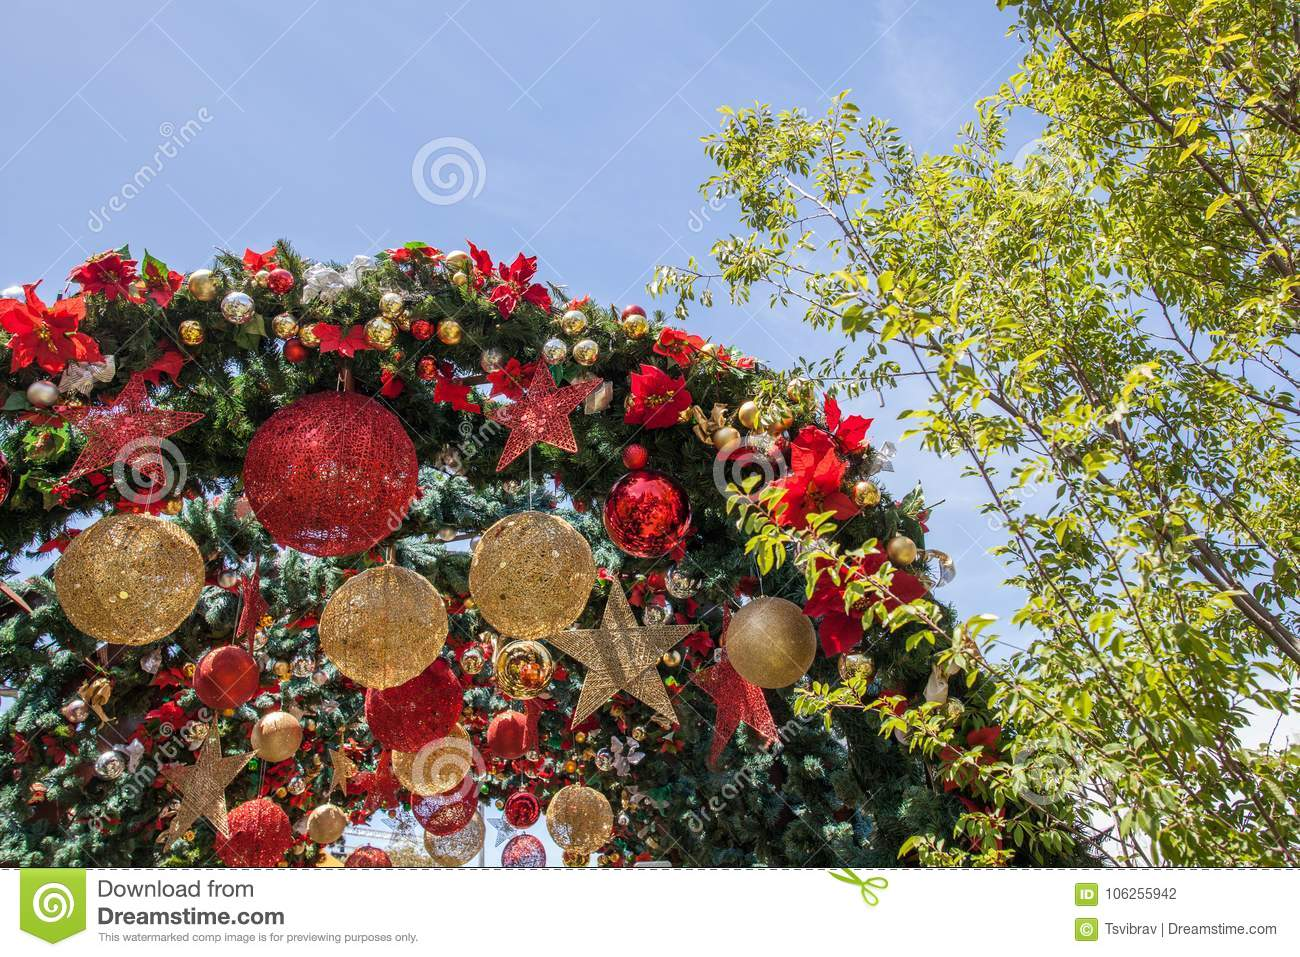 download melbourne australia december 16 2017 christmas decorations at federation square - Christmas Decorations Australia